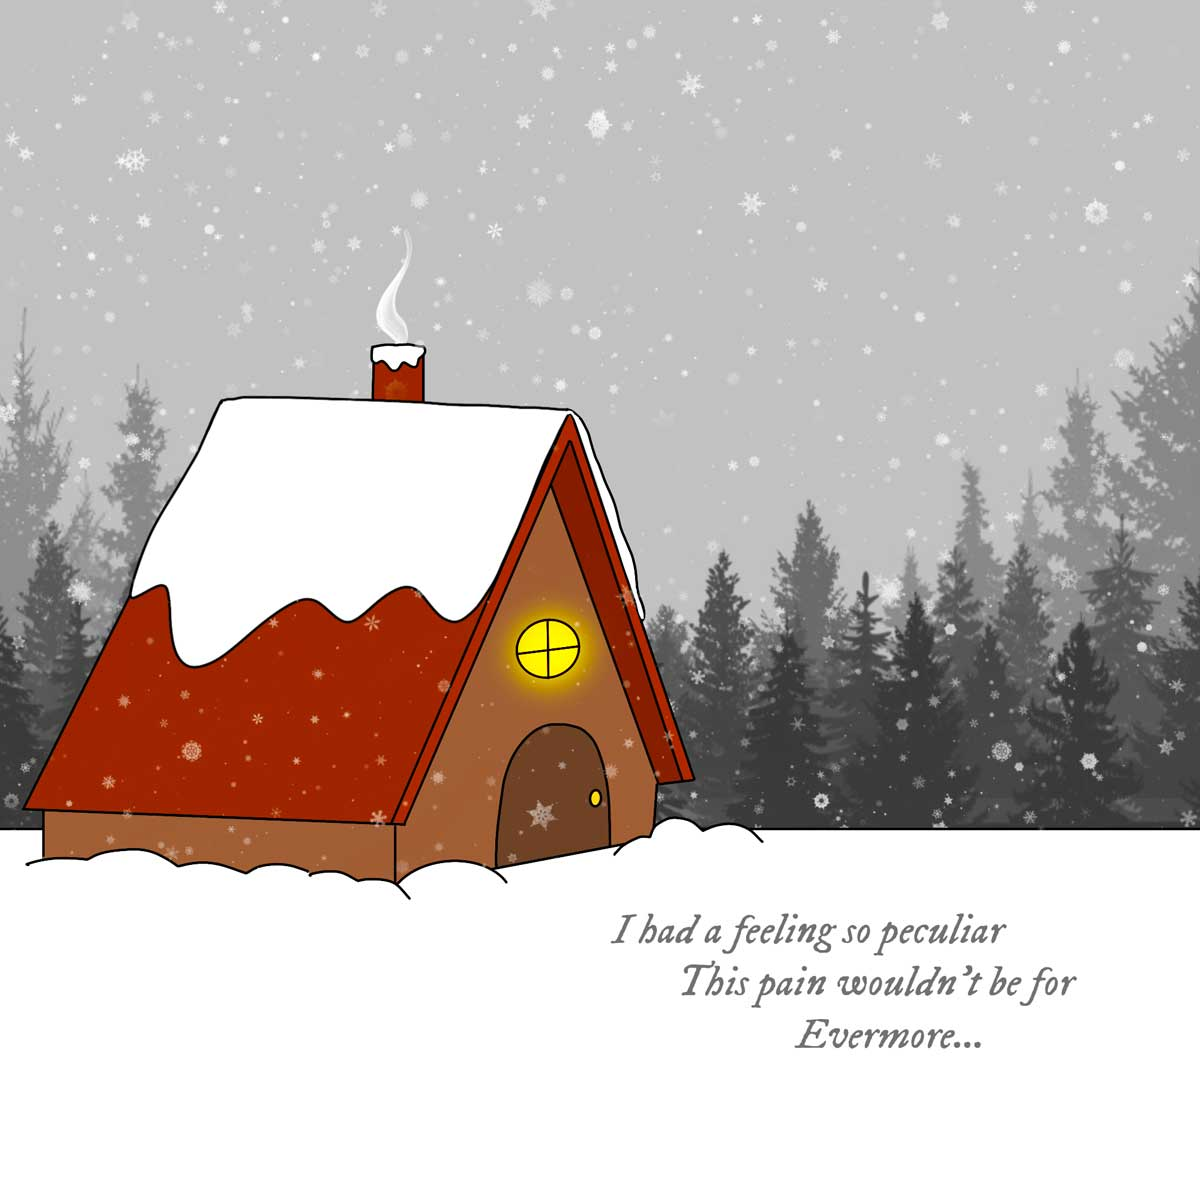 this pain wouldn't be for evermore quote on snowy cabin scene.